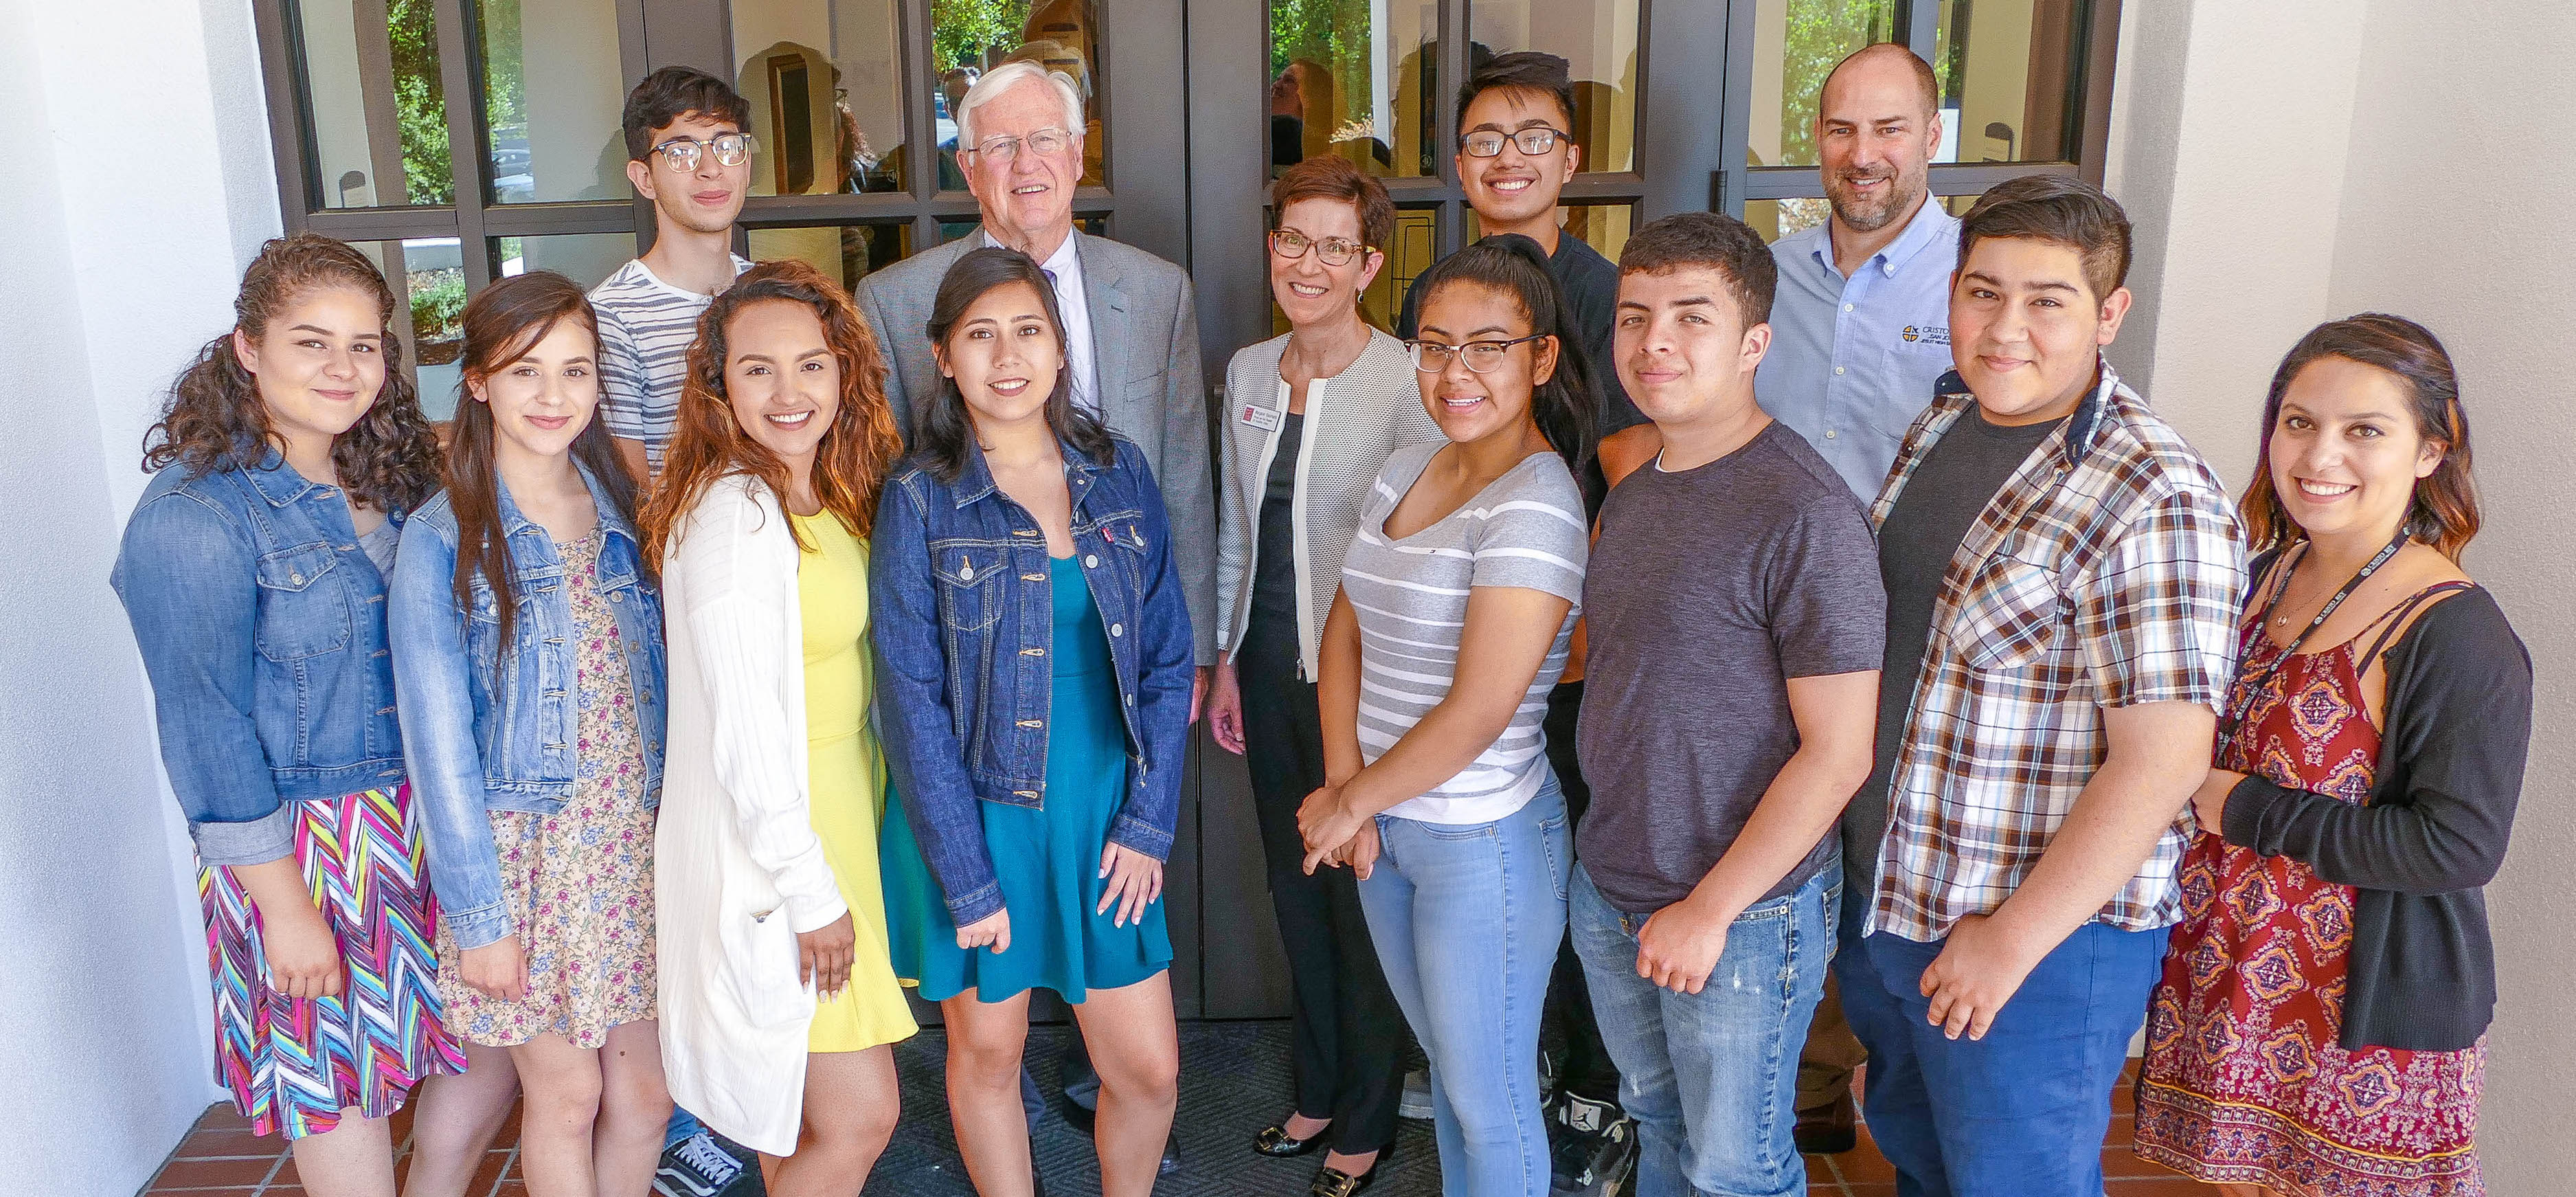 The inaugural class of Cristo Rey San Jose Annual Scholarship recipients gather with Saint Mary's President James Donahue and Provost and Vice President for Academic Affairs Margaret Kasimatis. Front Row (Left to Right): Jacqueline Torres, Luciana Zuniga, Sojey Olmedo, Isabel Martinez, Jennifer Cortez, Abel Cuevas, Diego Reece, Cristina Avina (Alumni Advisor). Back Row (Left to Right): Adrian Mireles Mata, President Donahue, Provost Kasimatis, Ben Nguyen, Todd Hicks (CRSJ Director of University Access and Success).